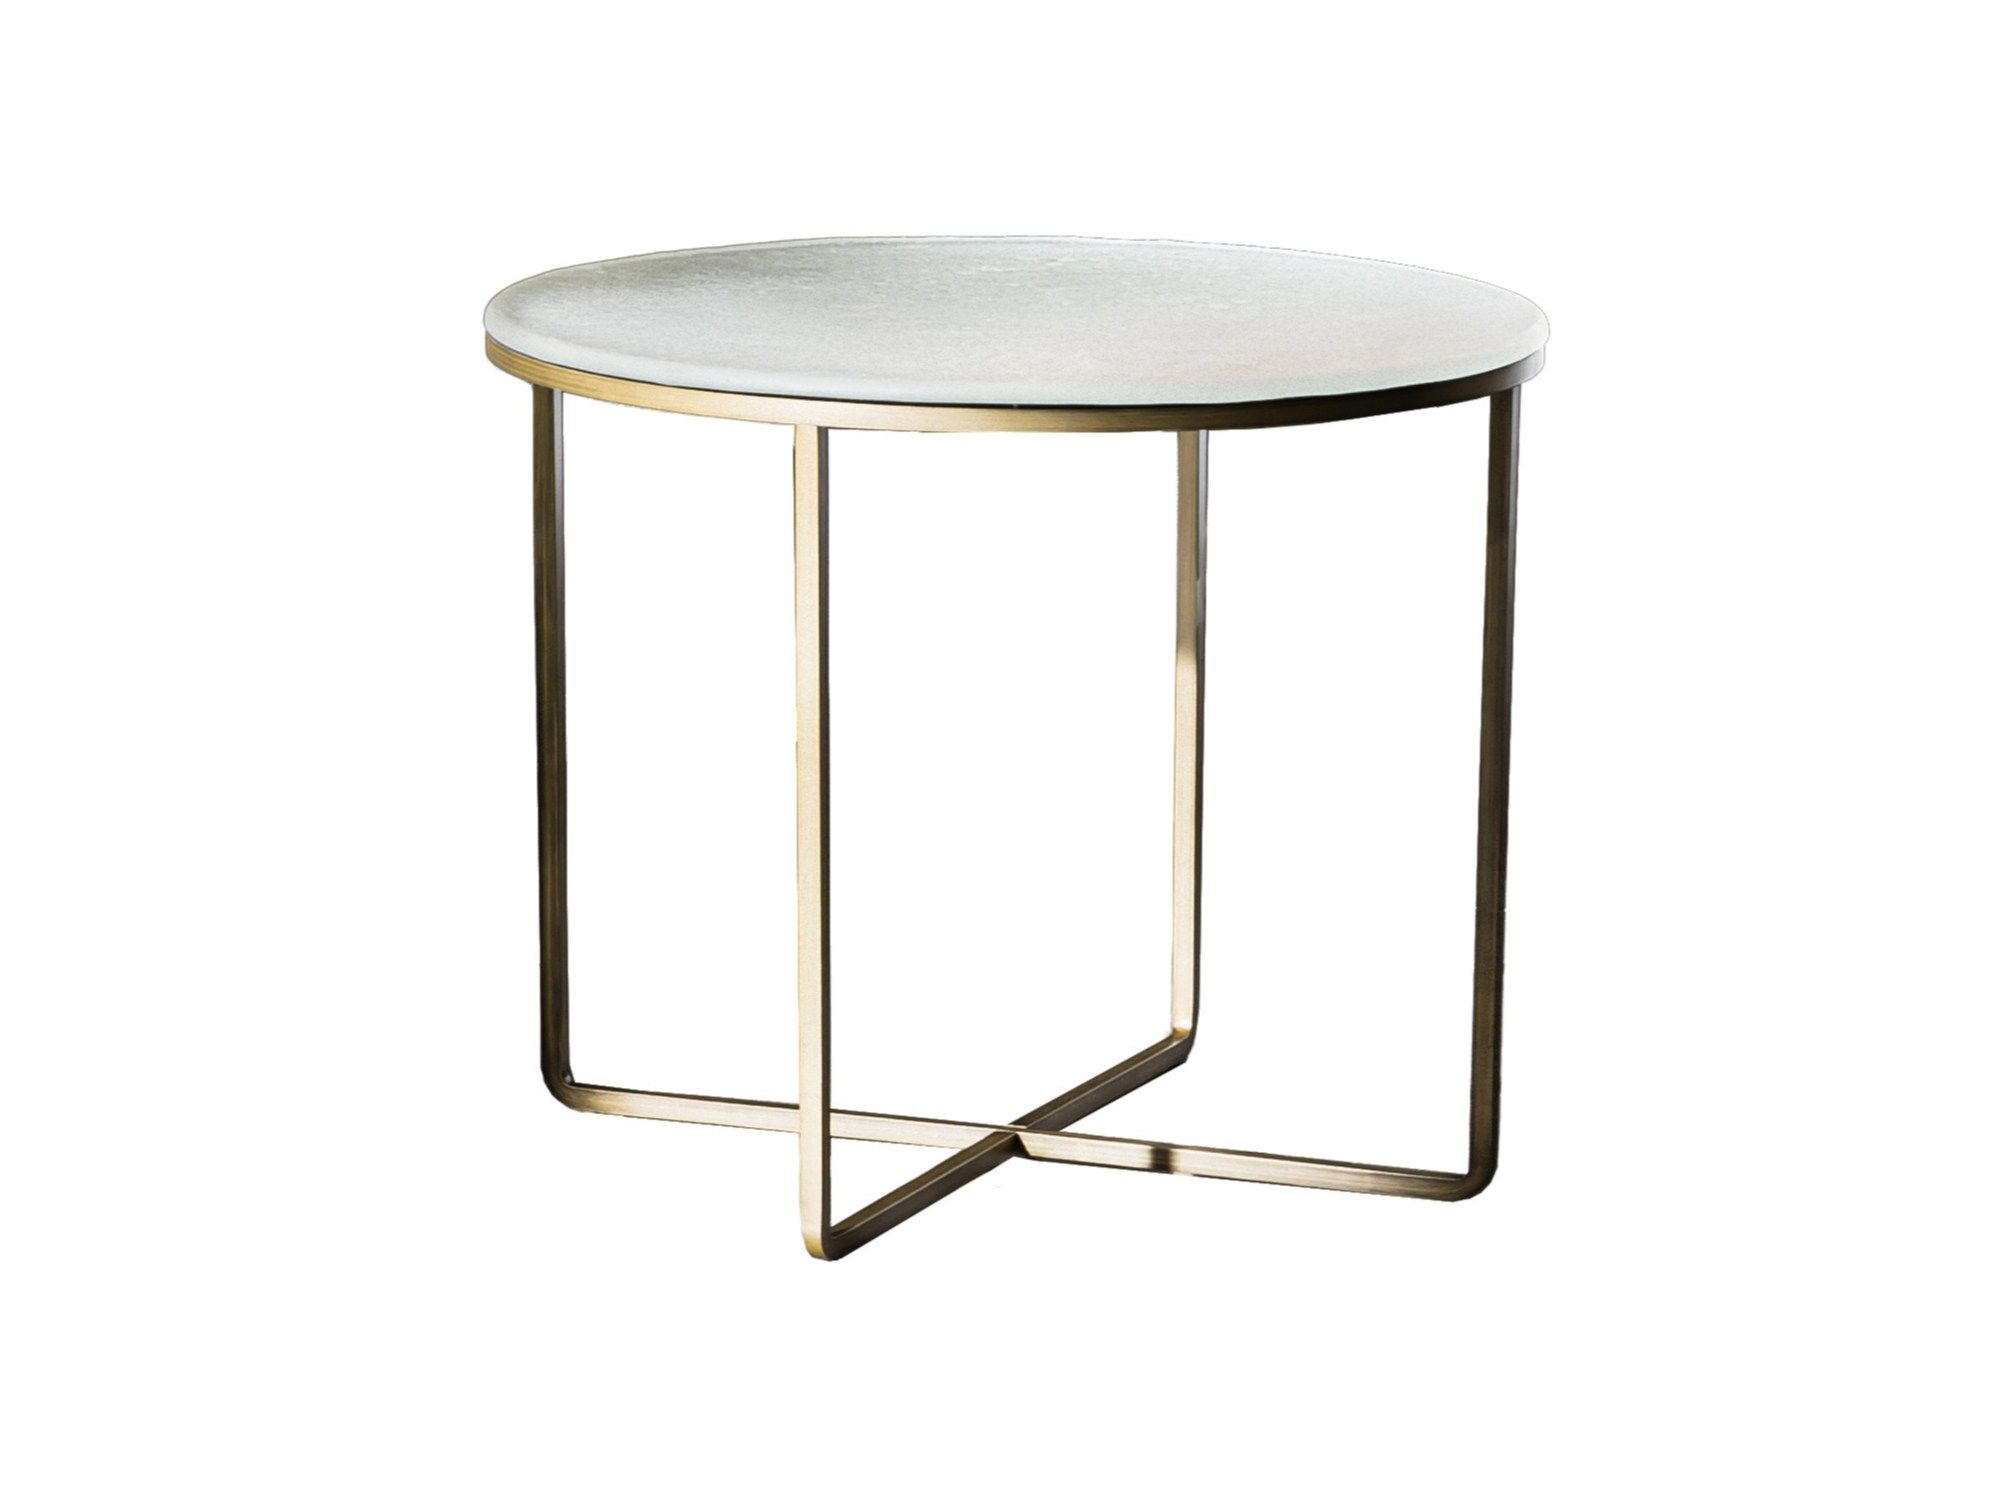 Round Coffee Table Piktor By Sovet Italia Design Lievore Altherr Molina Round Coffee Table Table Coffee Table [ 1512 x 2016 Pixel ]